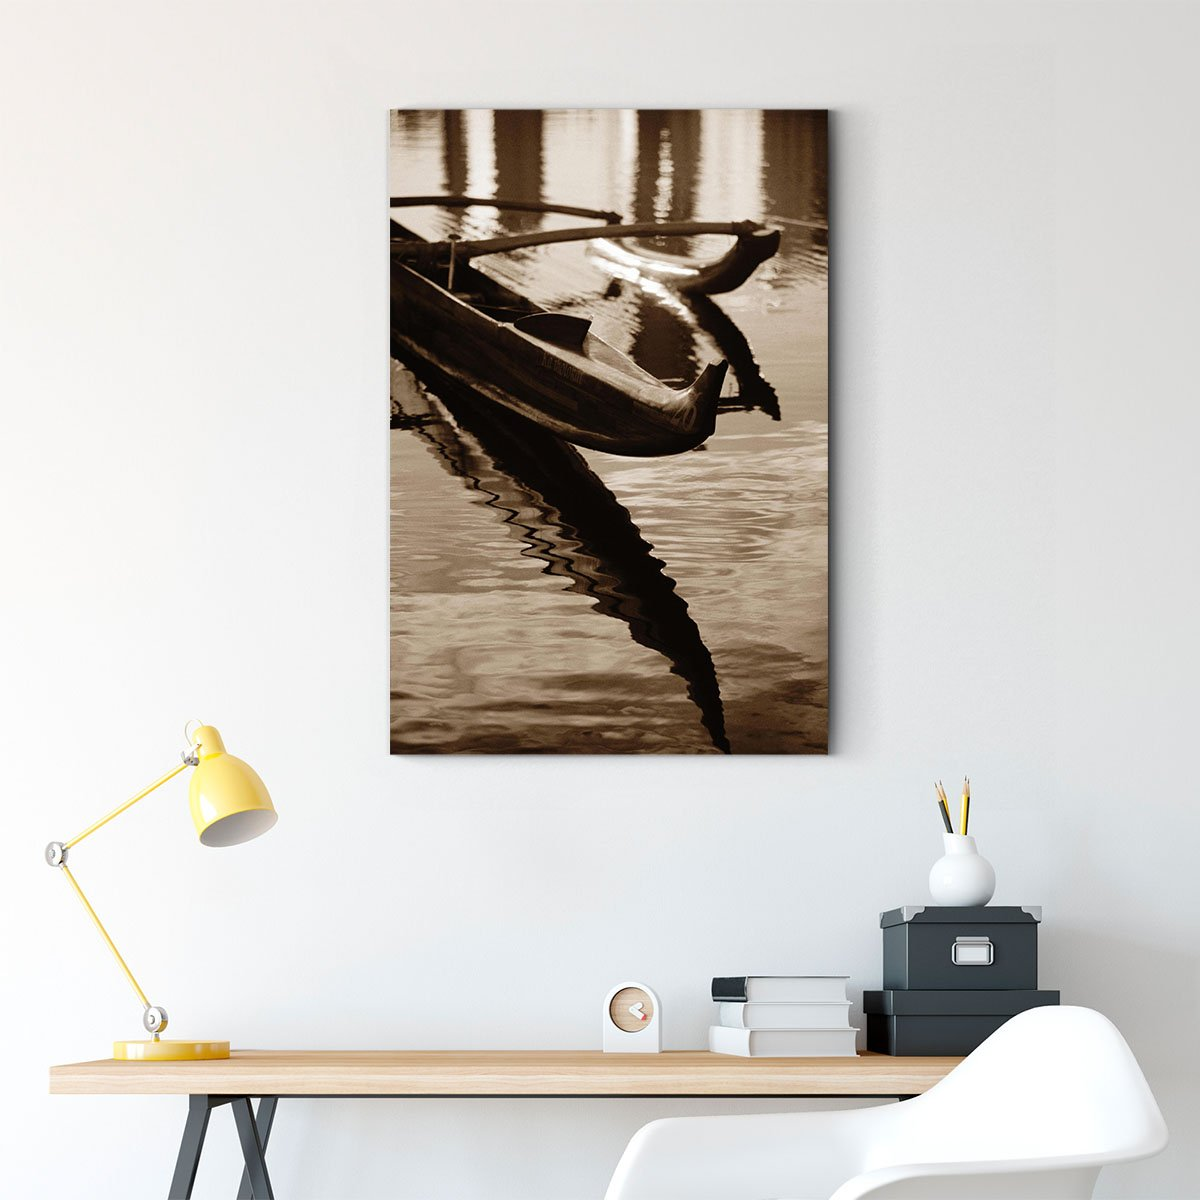 Boat on the river bank black and white decorative painting 026